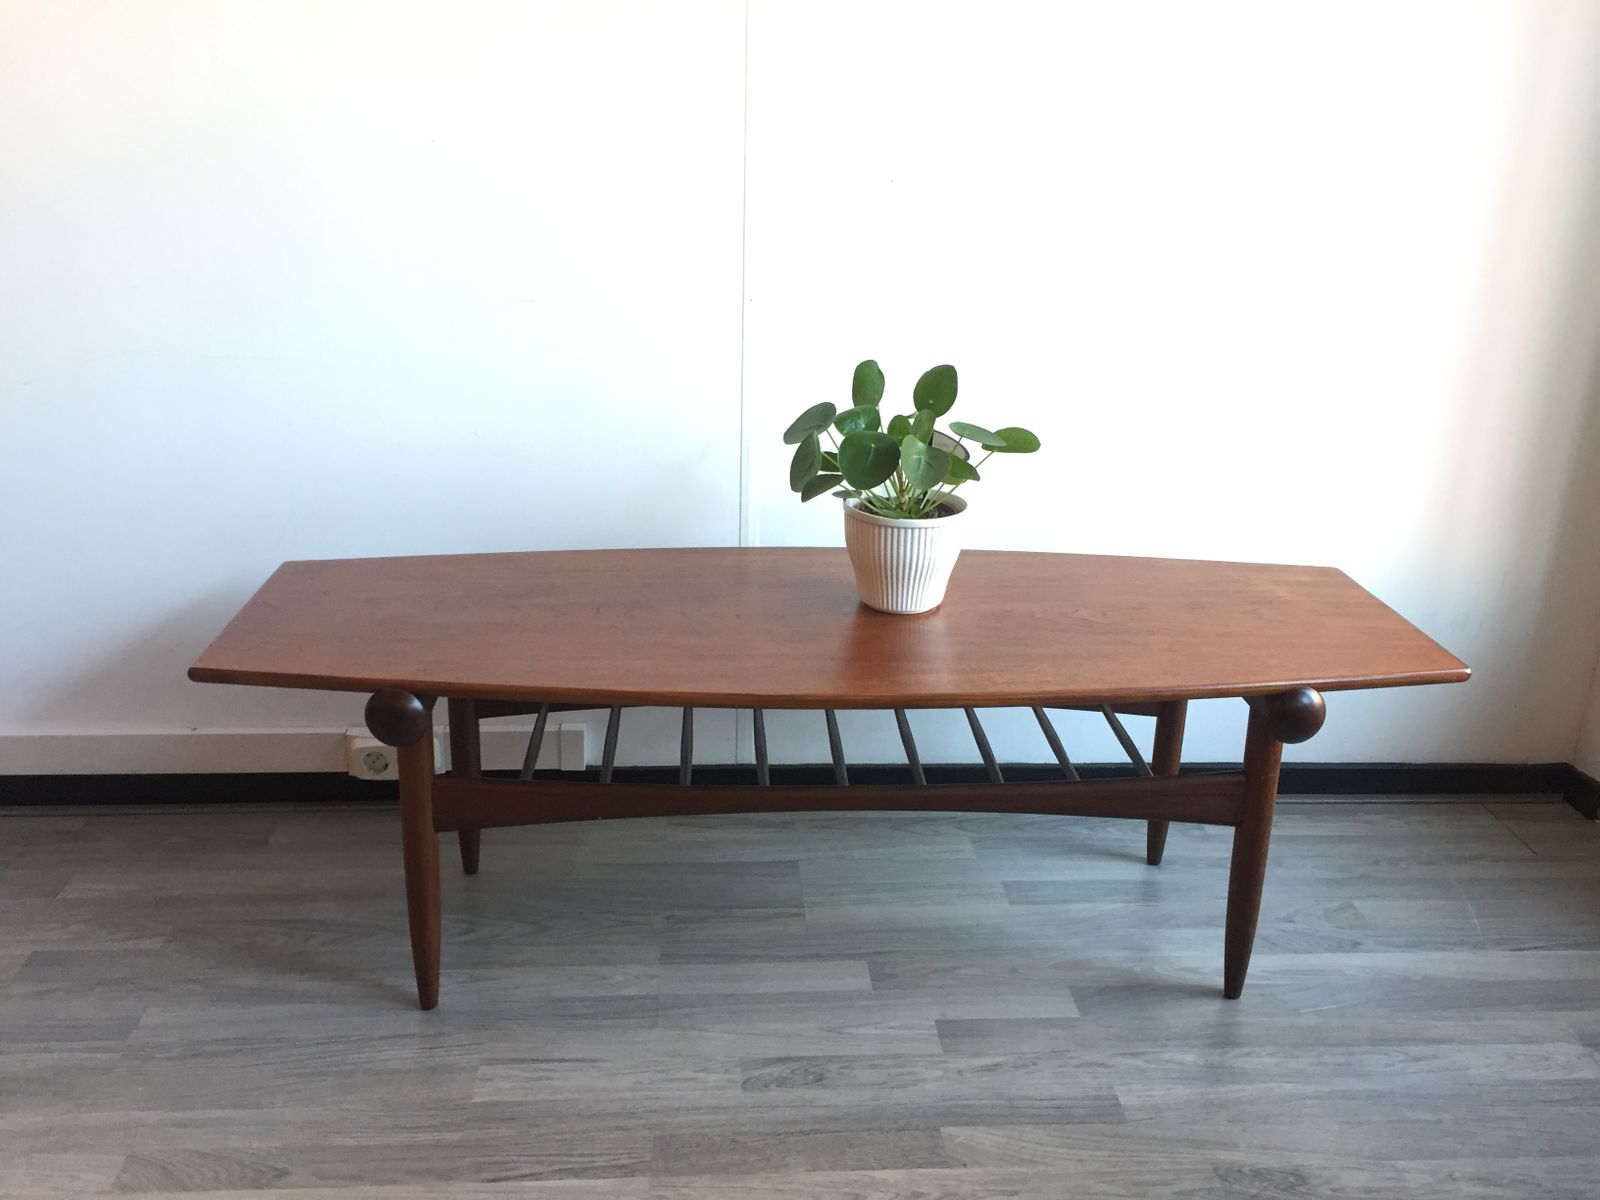 Vintage Reversible Teak & Formica Coffee Table 1960s for sale at